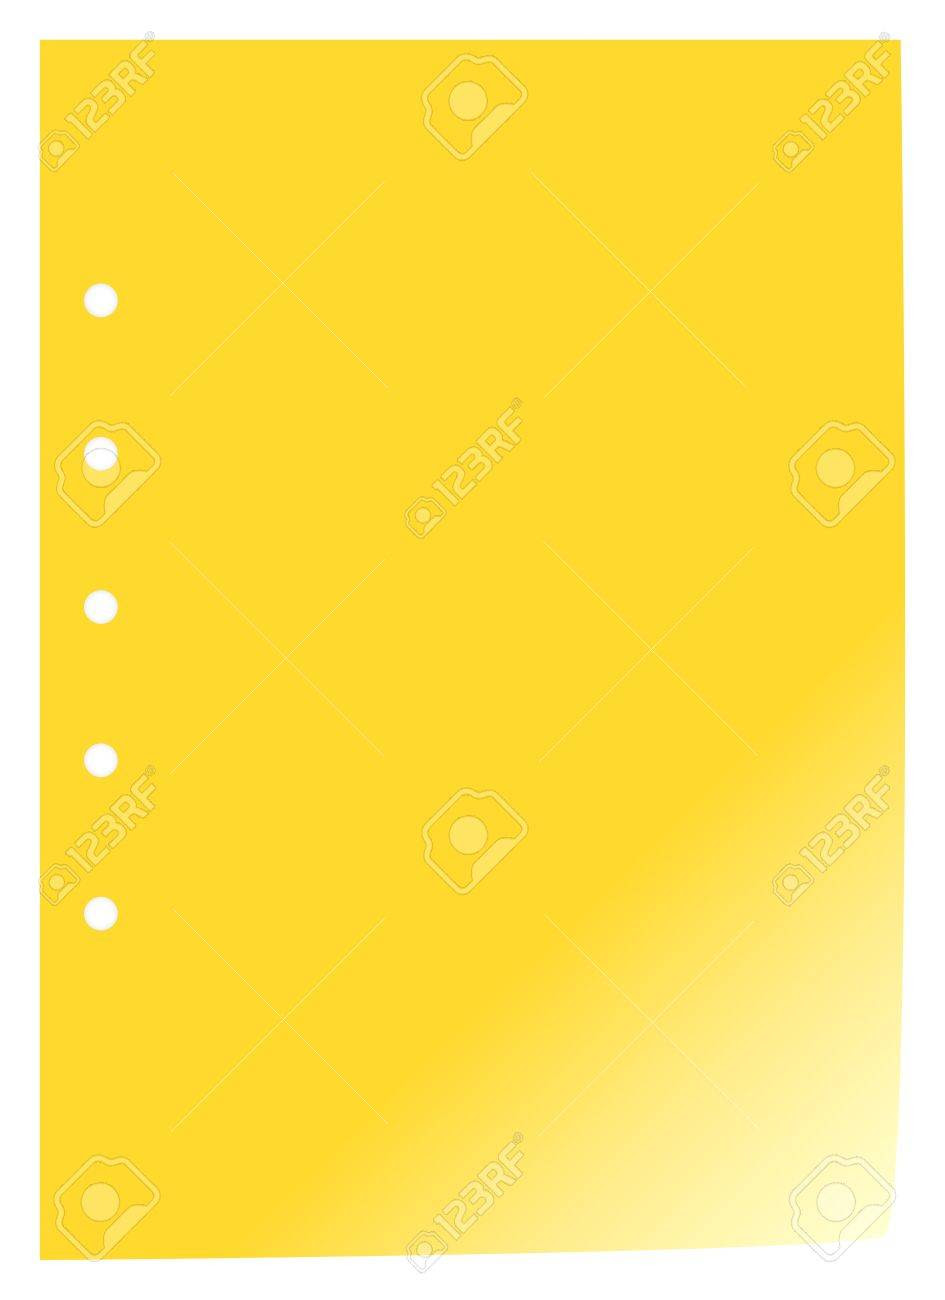 Blank Yellow Page With Holes Royalty Free Cliparts, Vectors, And ...